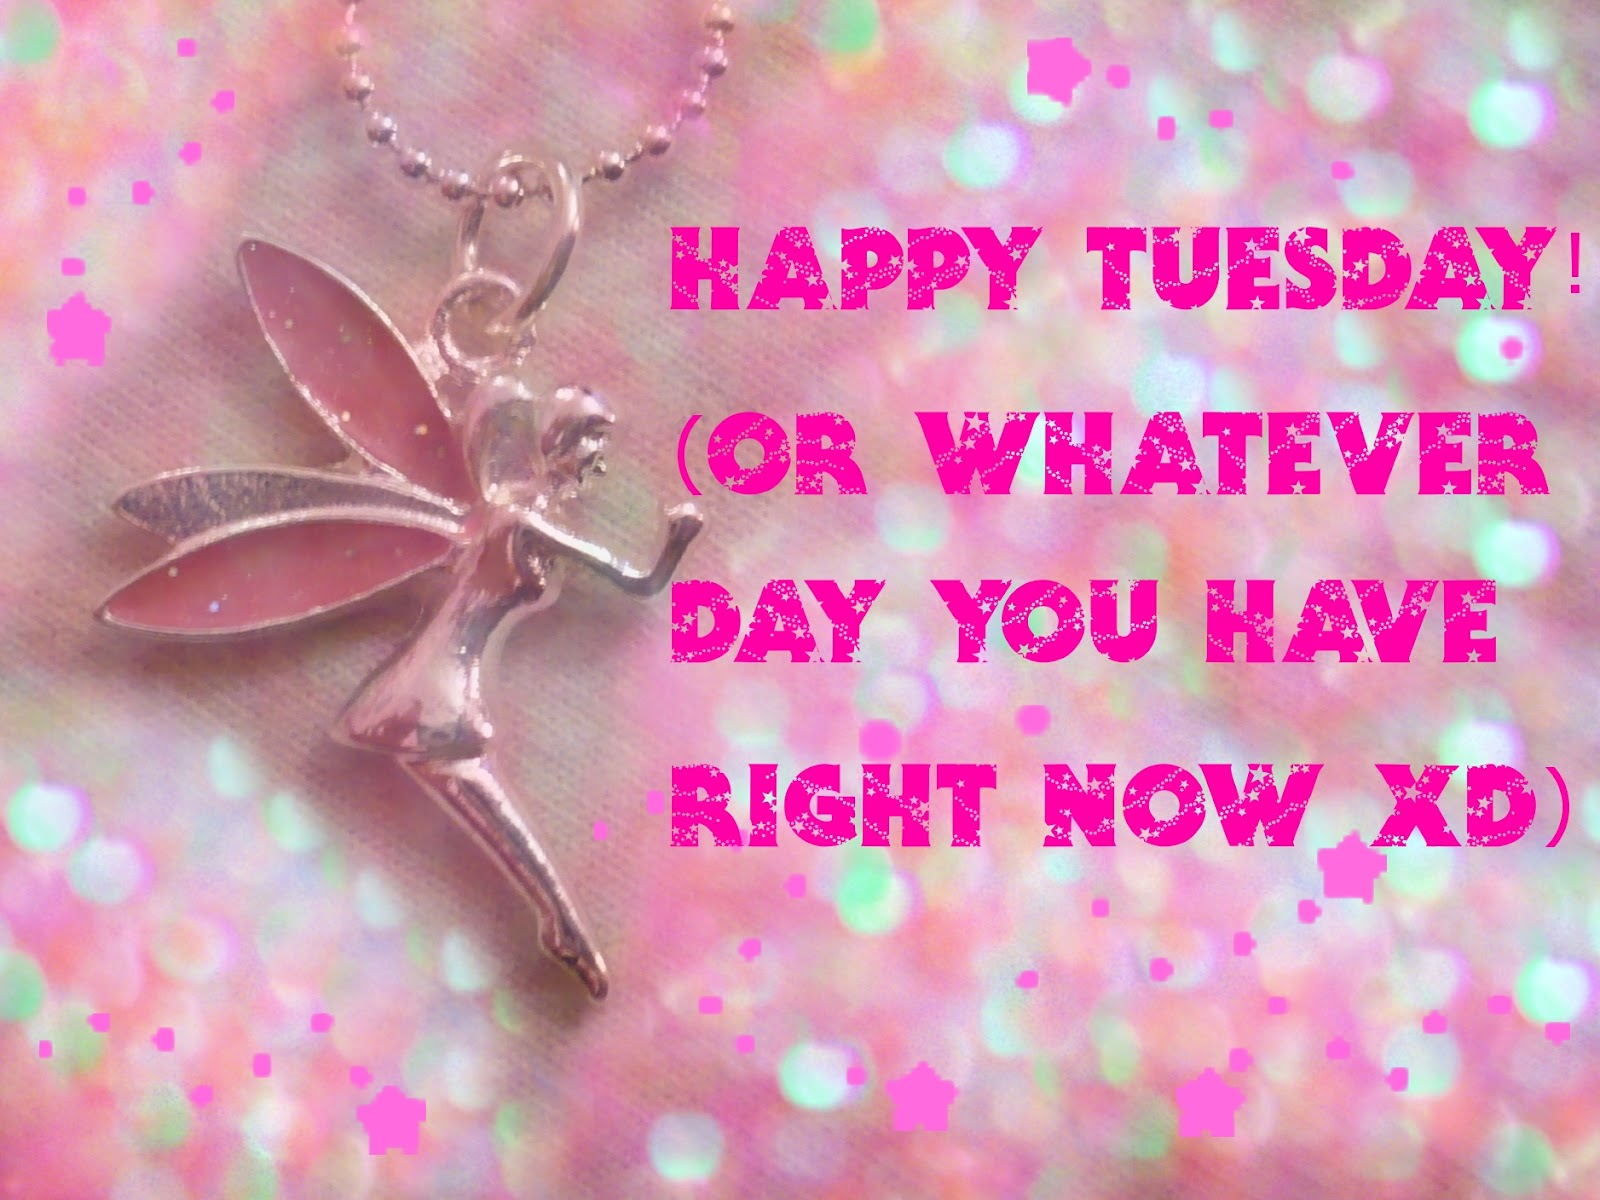 Puppenschloss ~*~: Happy Tuesday! // Quotes ♫